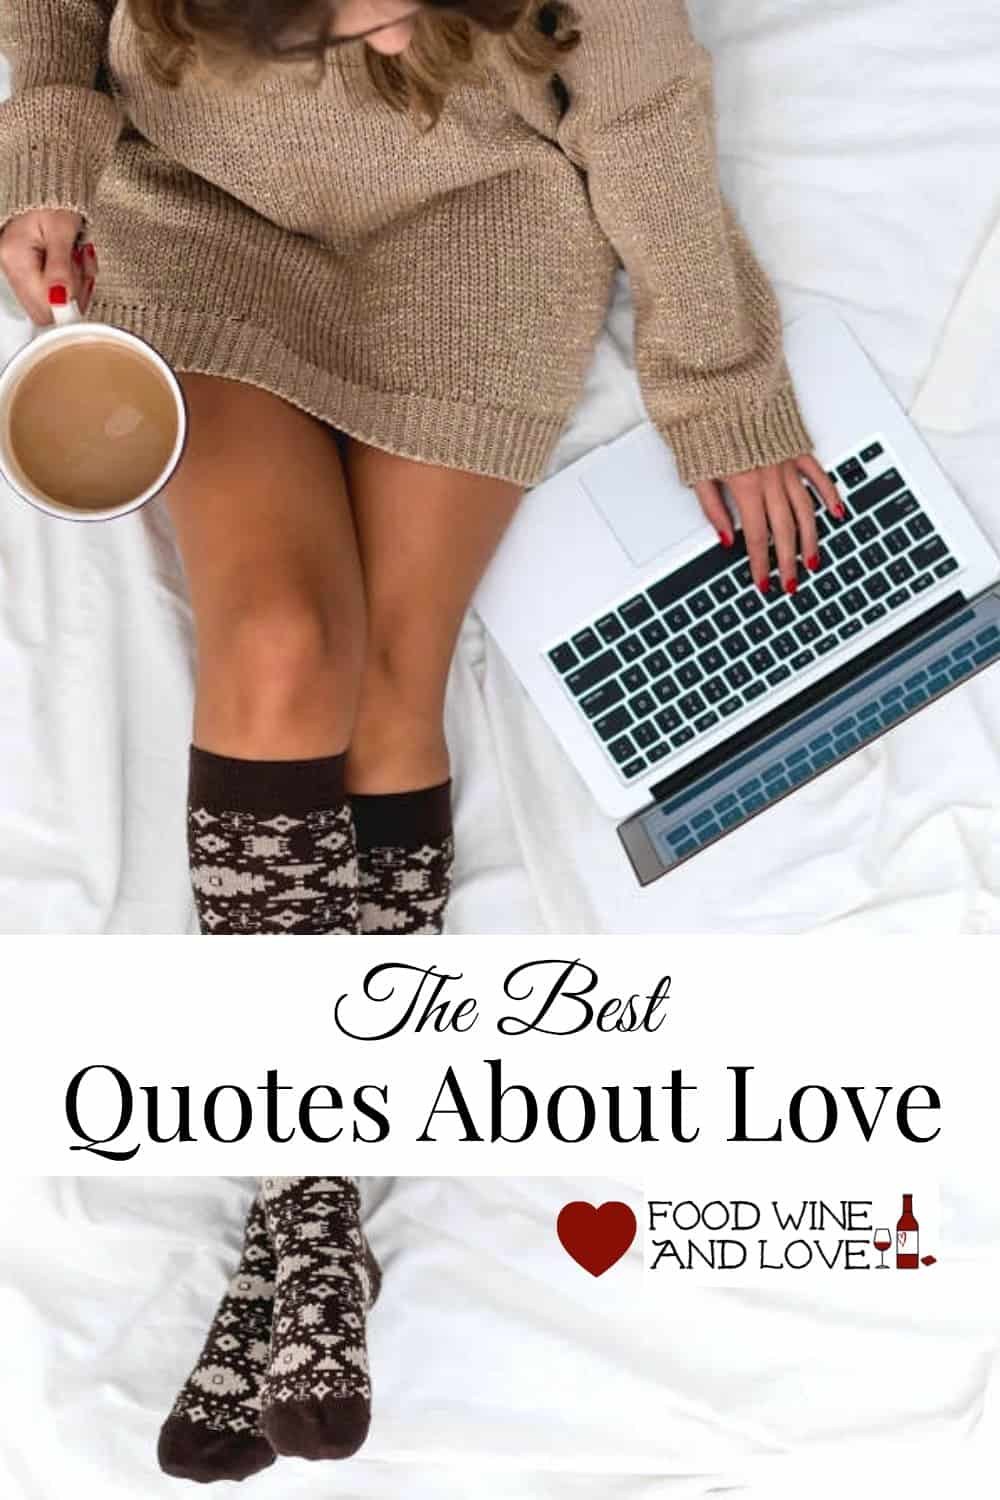 The Best Quotes About Love